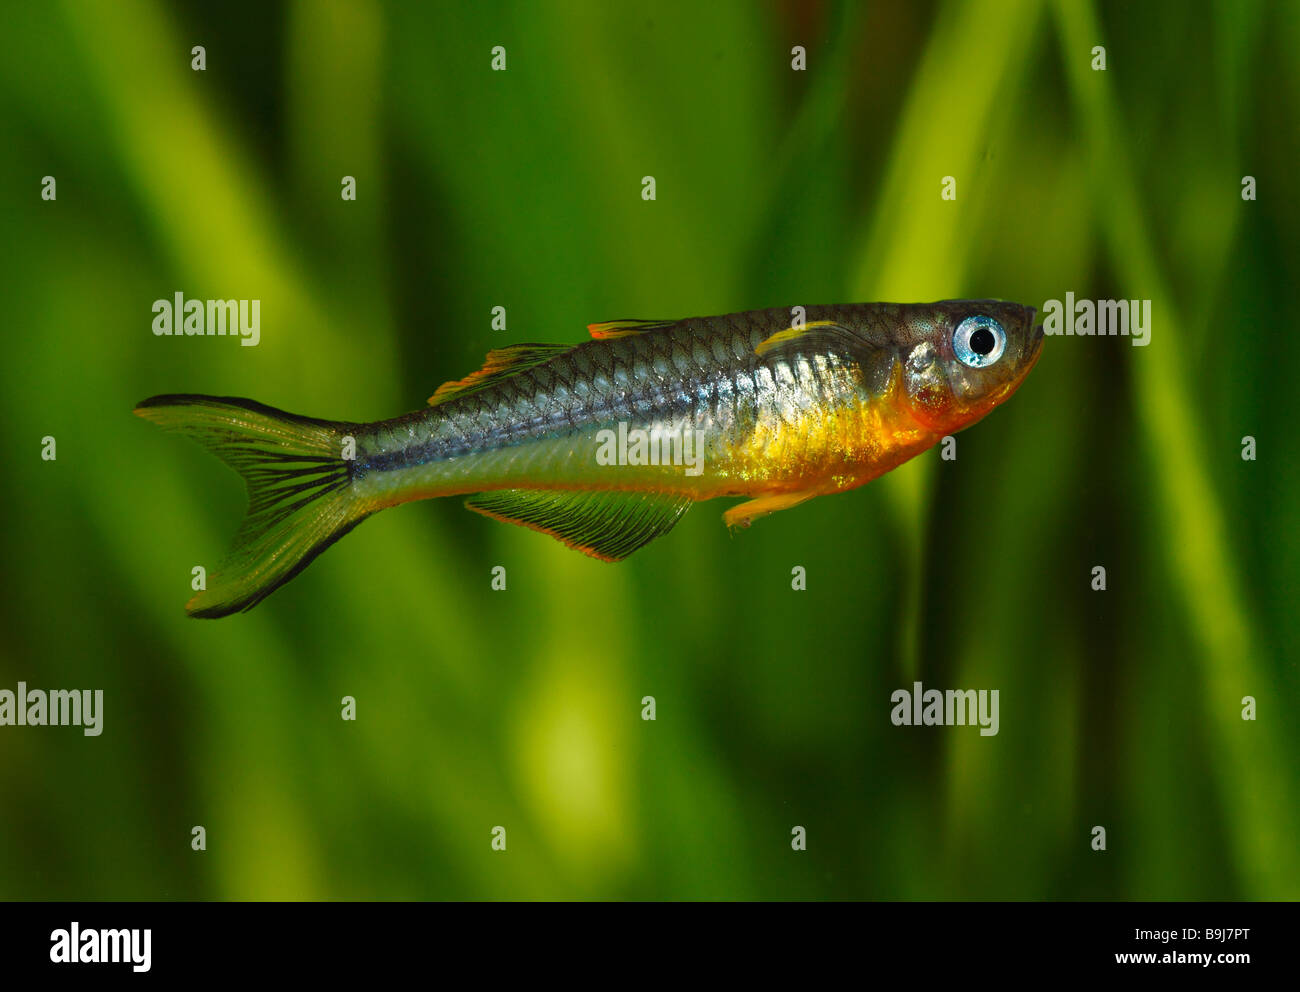 Forktail Blue-eye (Pseudomugil furcatus, Pseudomugil furcata) from New Guinea, male, warm water, freshwater aquarium - Stock Image